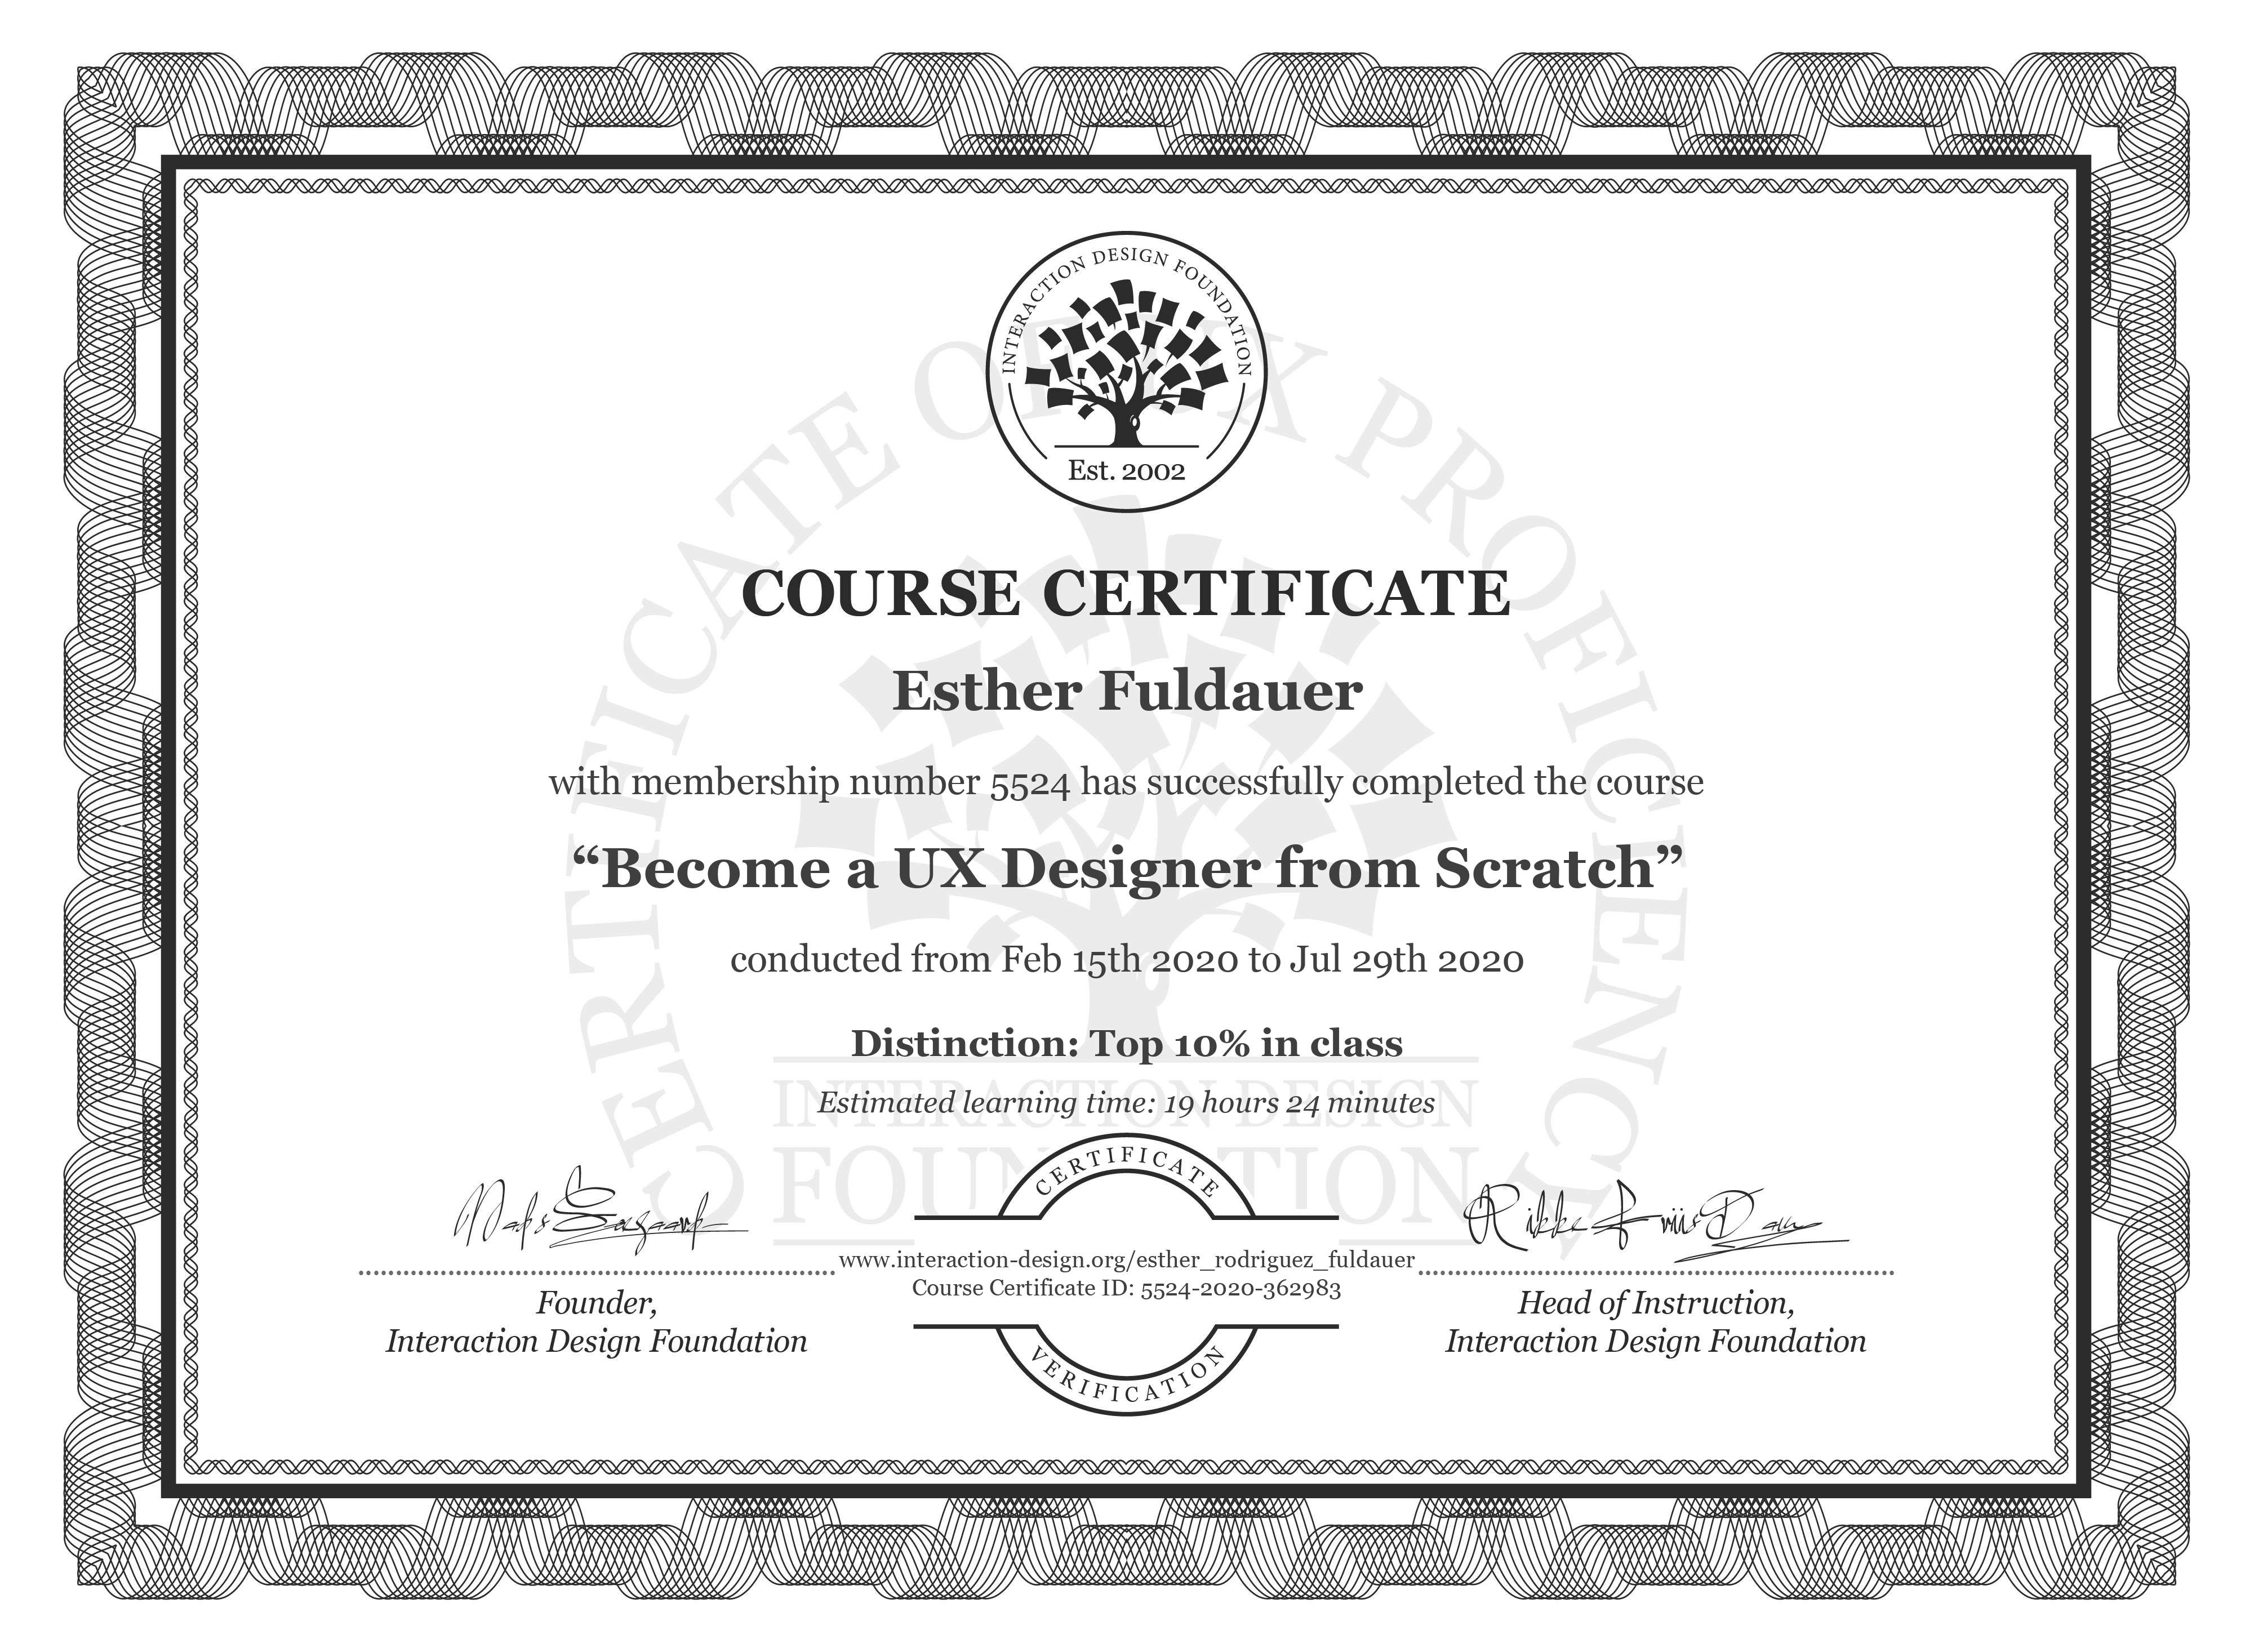 Esther Fuldauer's Course Certificate: User Experience: The Beginner's Guide